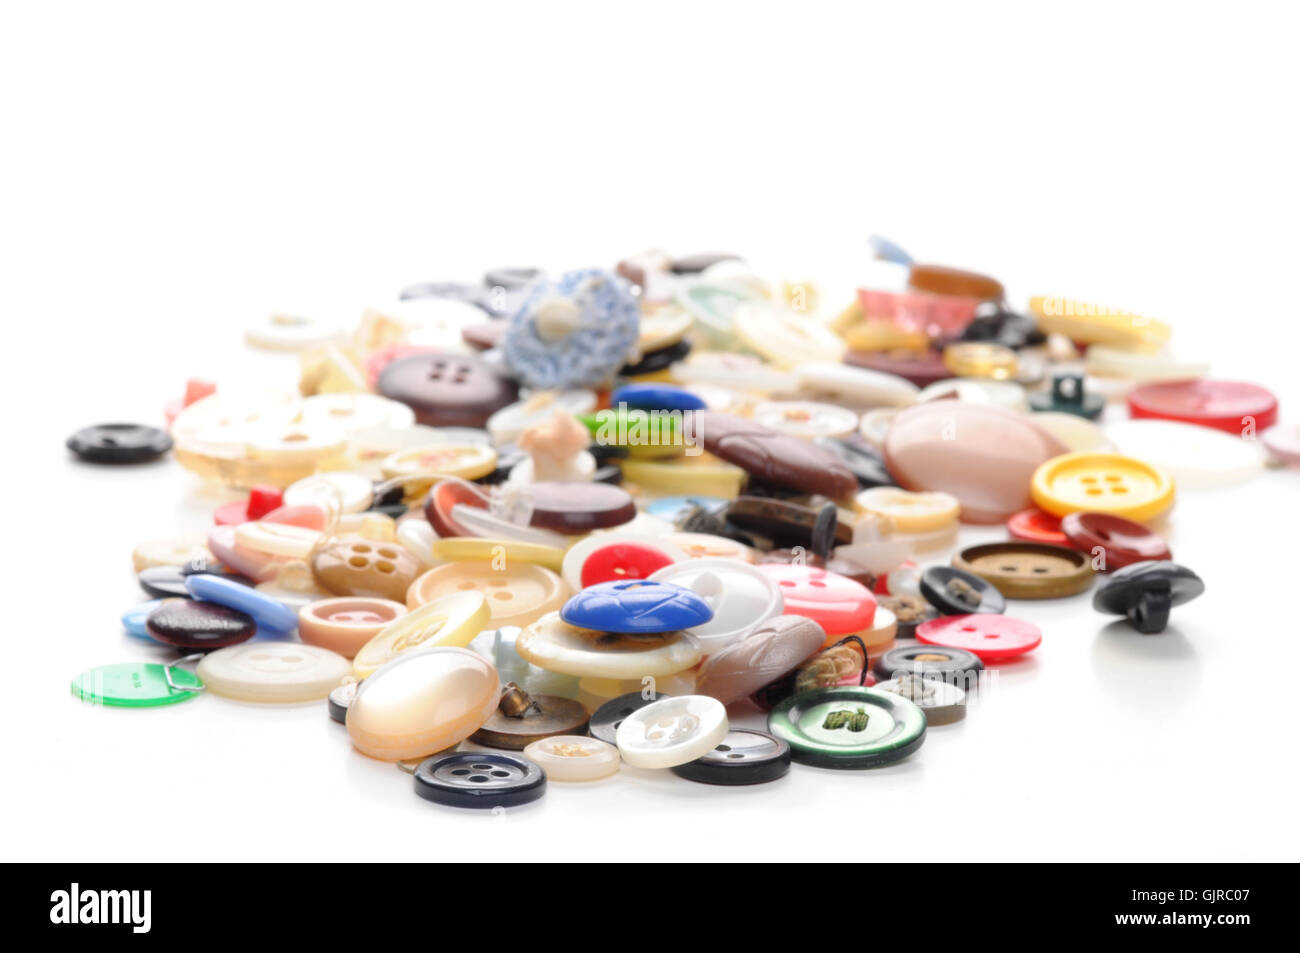 Discarded Buttons - Stock Image